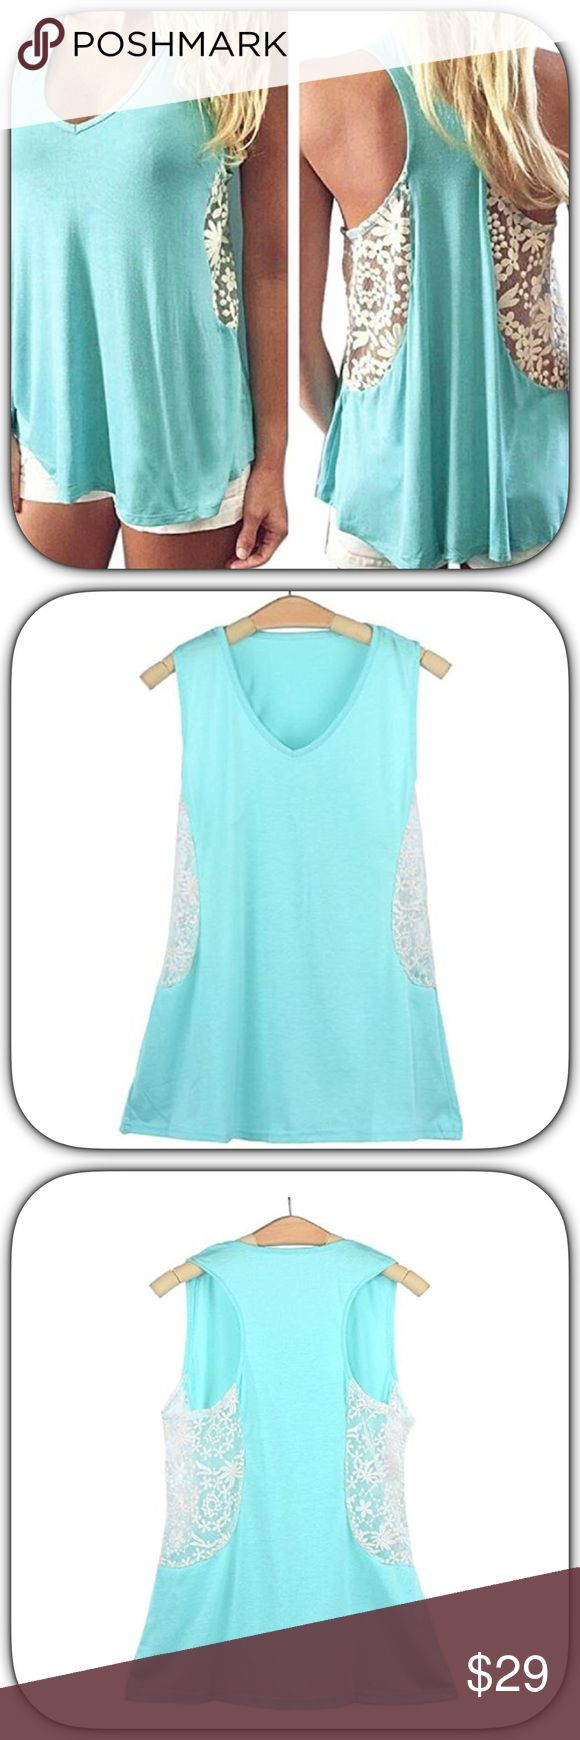 NWT Gorgeous Aqua & White Embroidered Lace Tank This is super soft and pretty! It is beautiful lace side panels to add some sex appeal to it! It has a V-neck which is very flattering on everyone! This is a gem! Bust 18 inches across! Boutique Tops Tank Tops